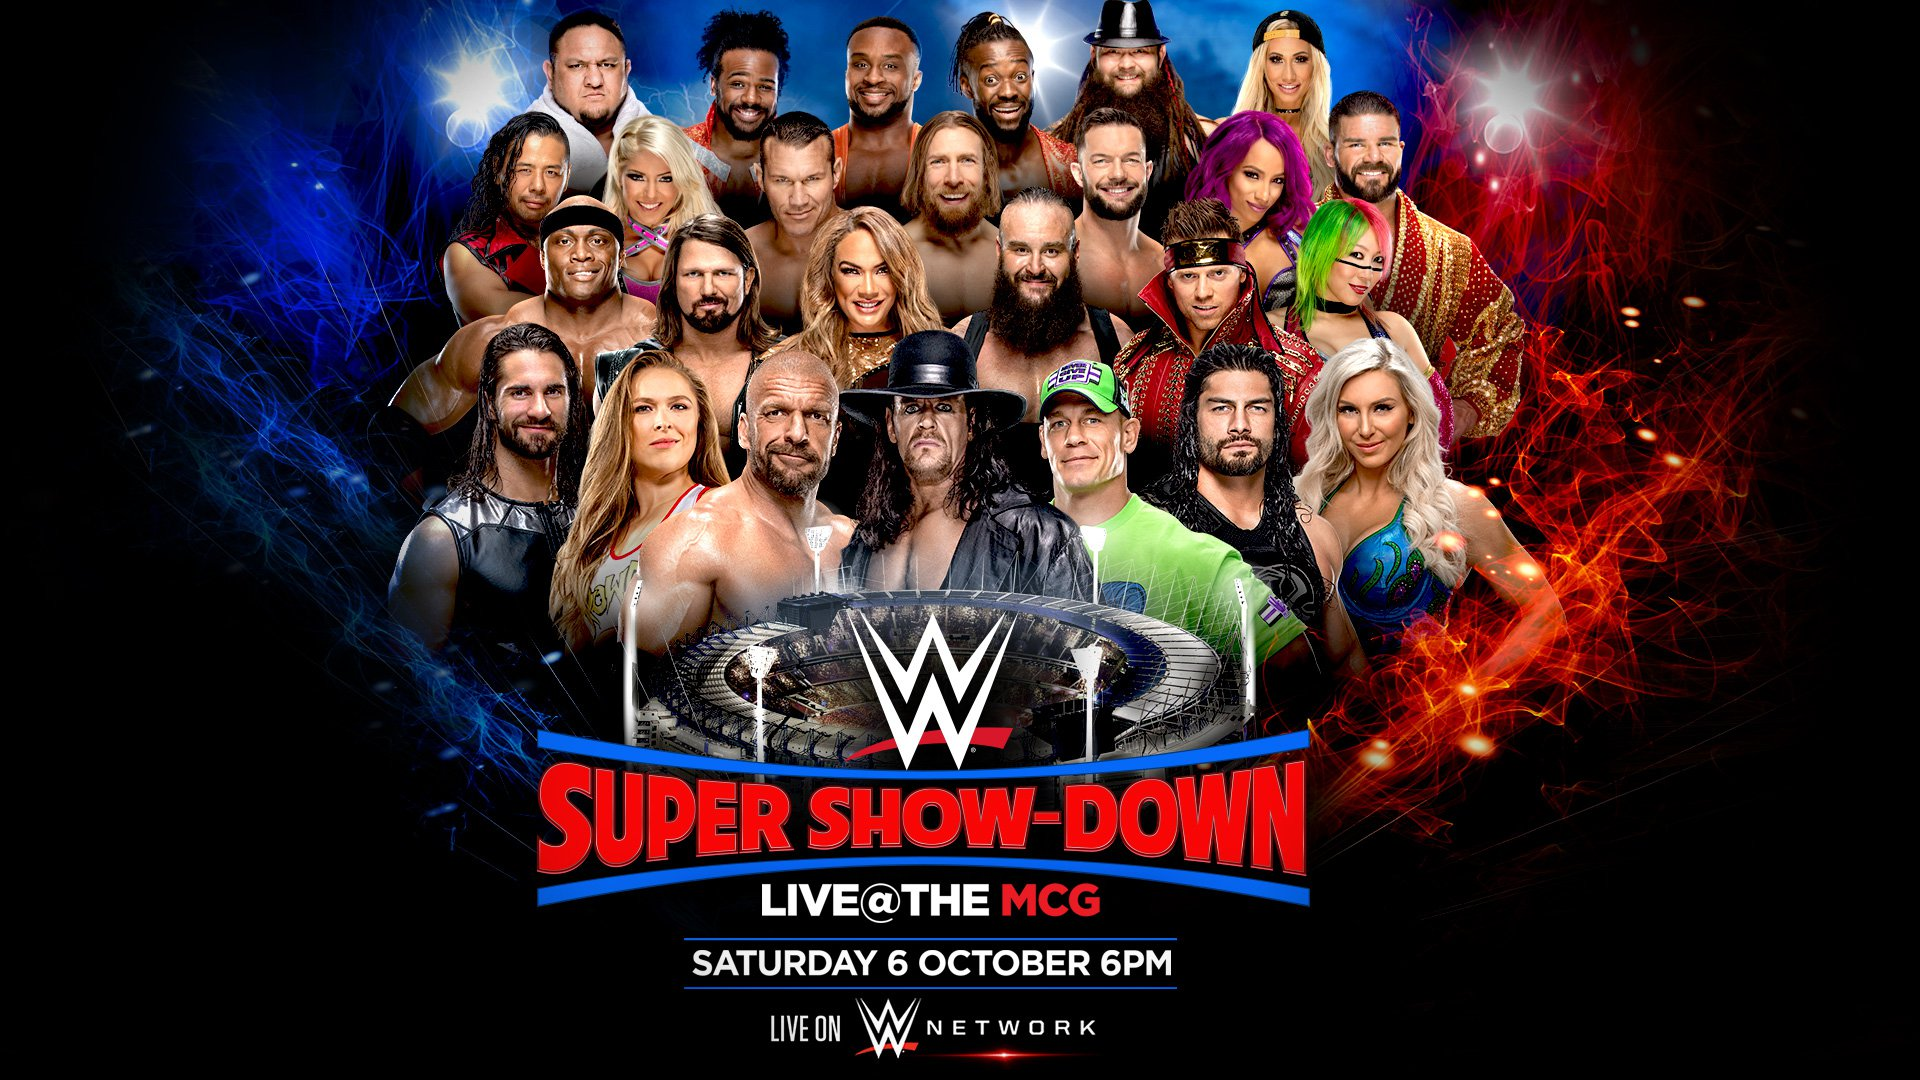 WWE Super Show-Down announced for Australia